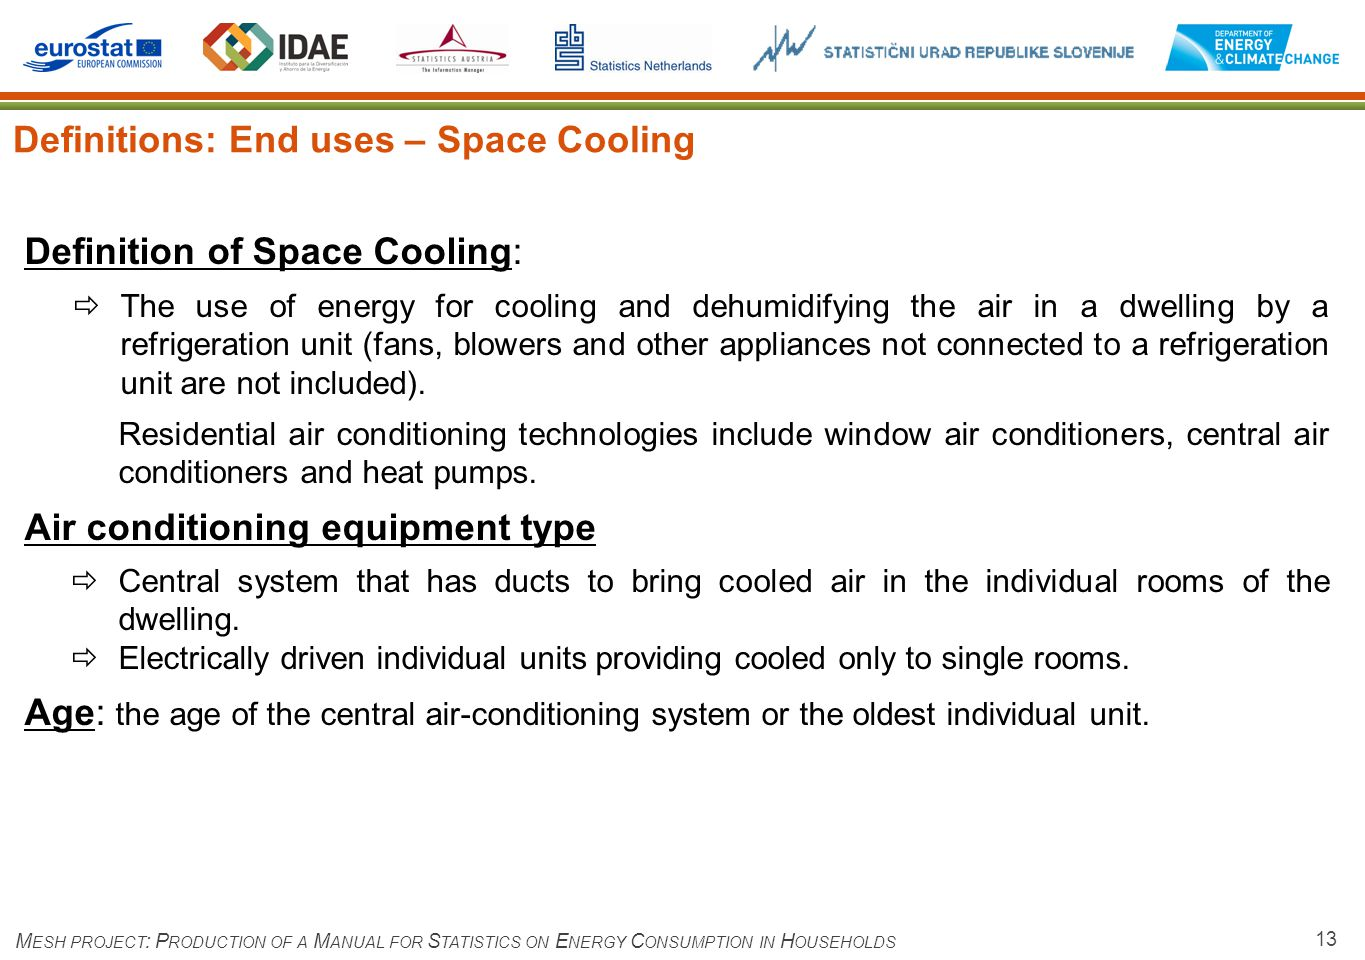 13 Definitions: End uses – Space Cooling M ESH PROJECT : P RODUCTION OF A M ANUAL FOR S TATISTICS ON E NERGY C ONSUMPTION IN H OUSEHOLDS Definition of Space Cooling: The use of energy for cooling and dehumidifying the air in a dwelling by a refrigeration unit (fans, blowers and other appliances not connected to a refrigeration unit are not included).